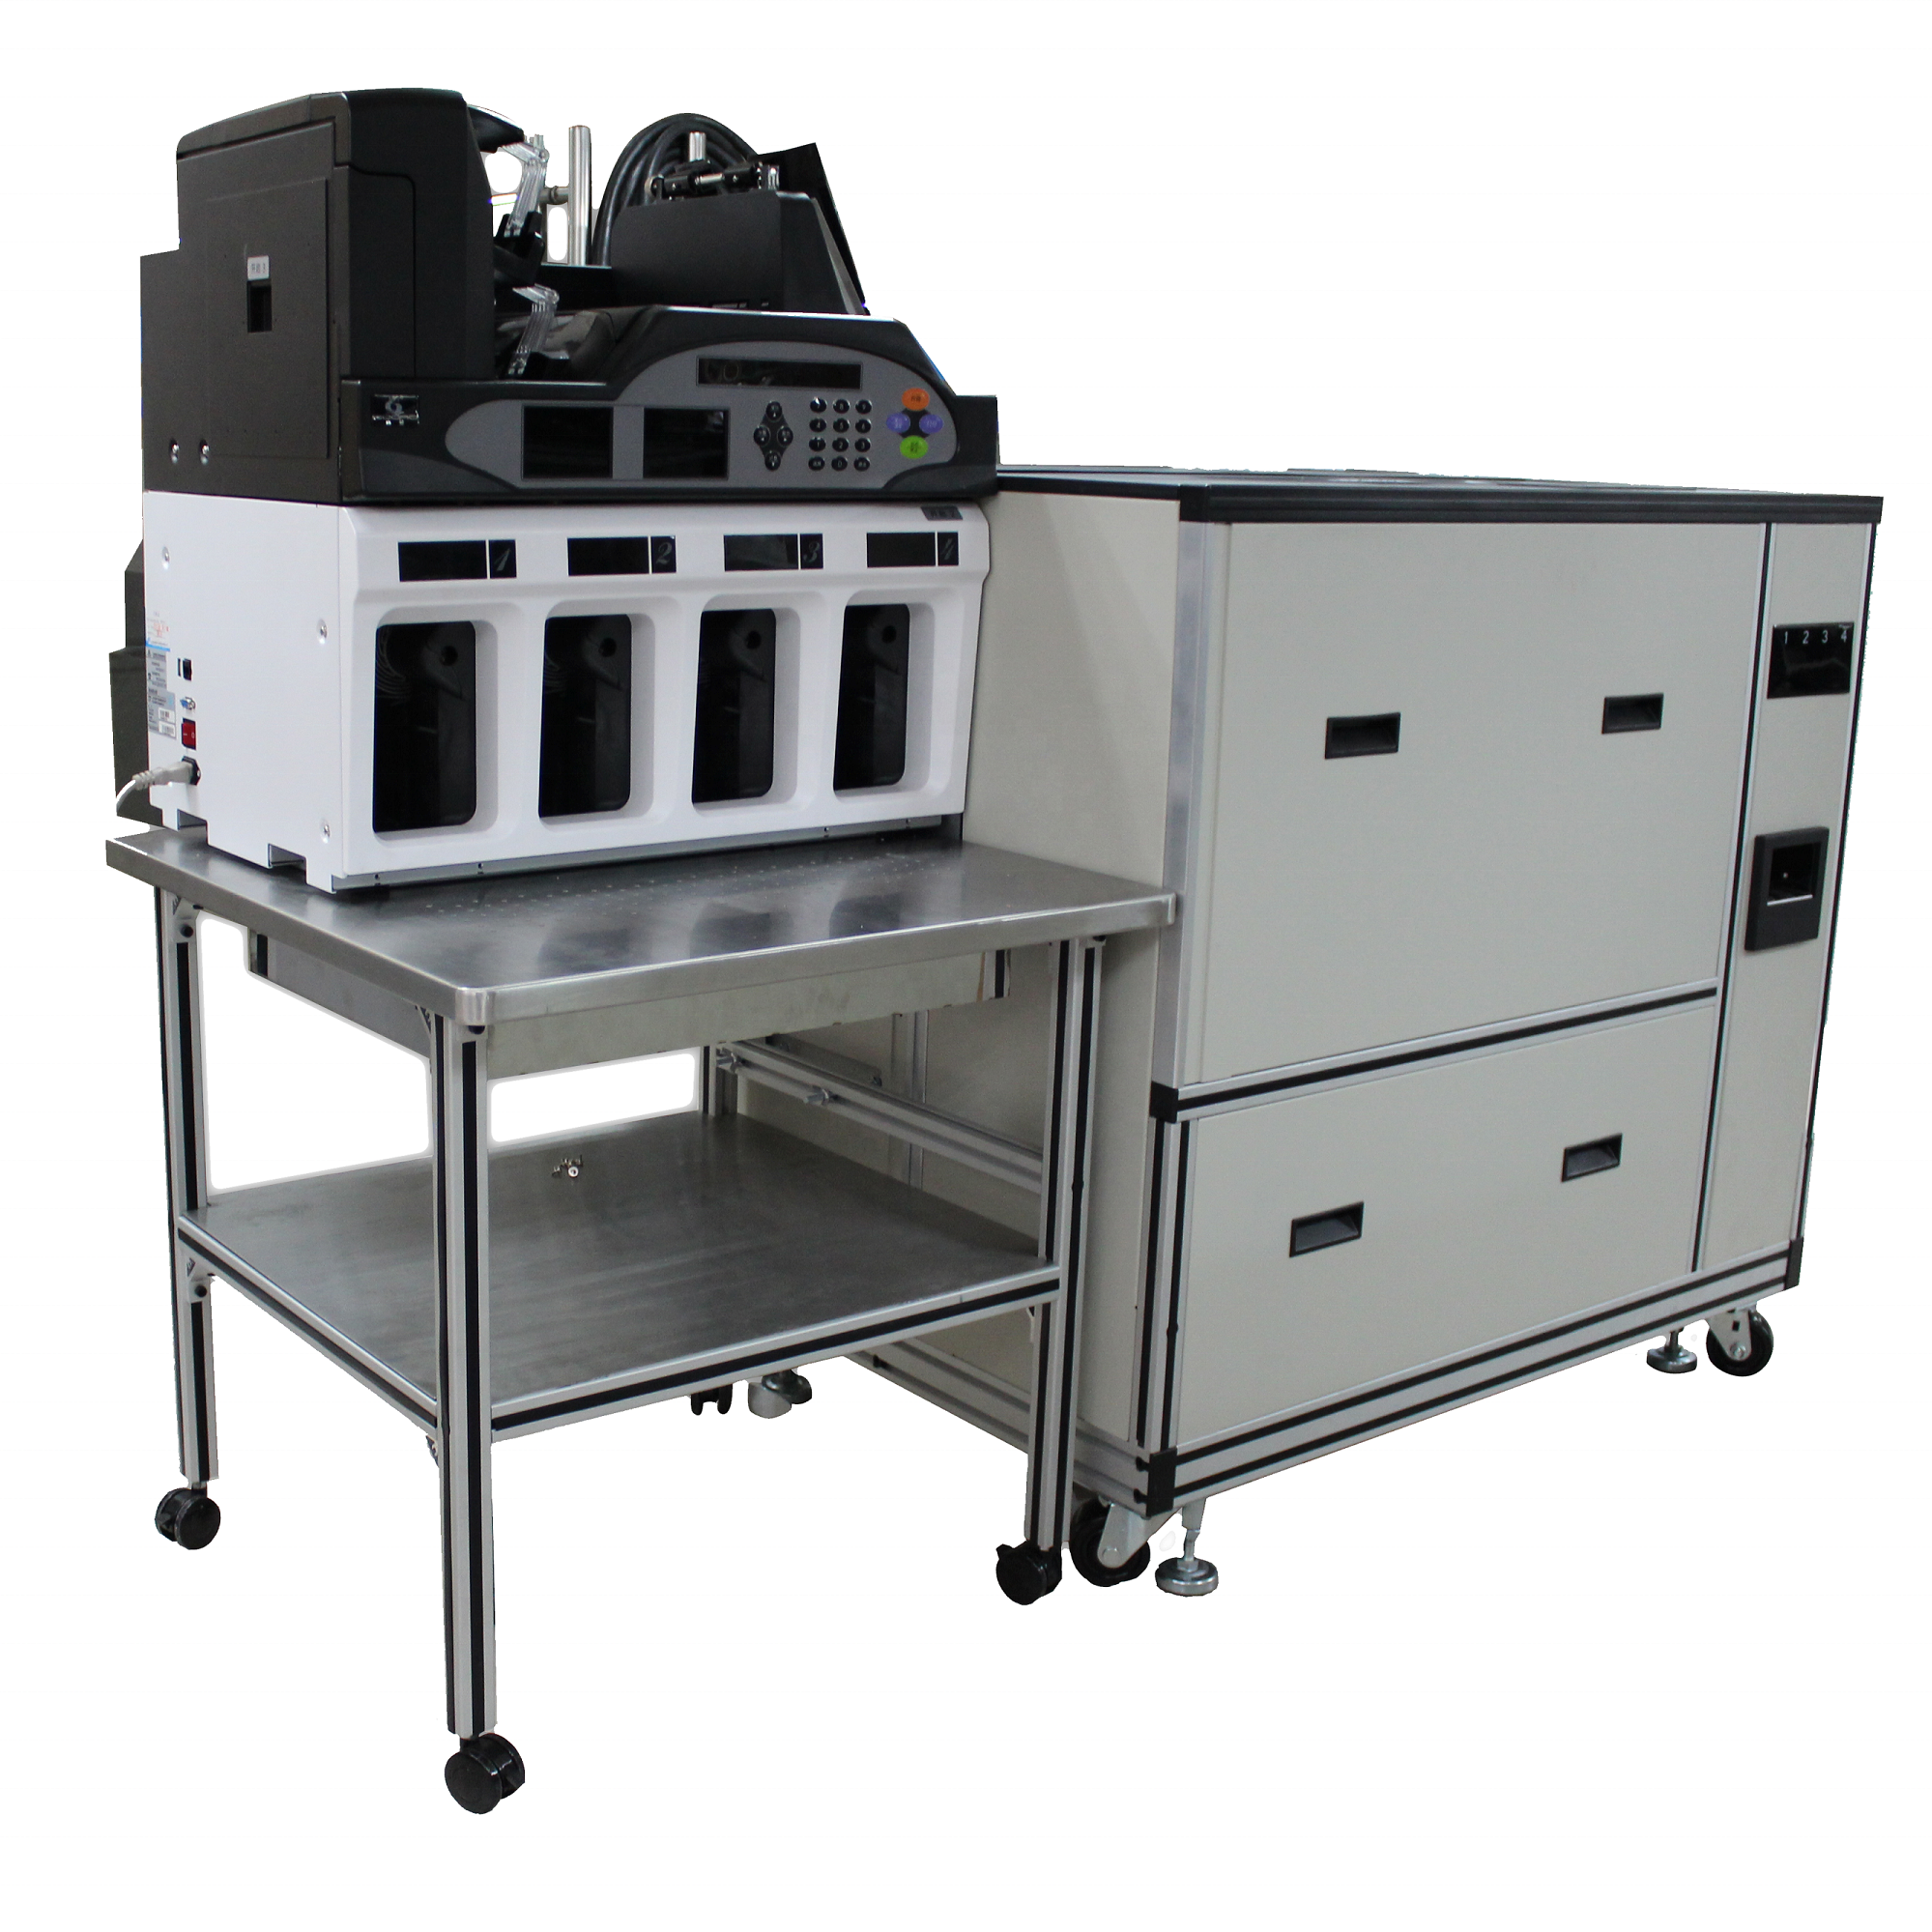 Multifunctional Bill Handling Equipment GA-QZ8000EG Currency Note Sorter and Binder for Bank